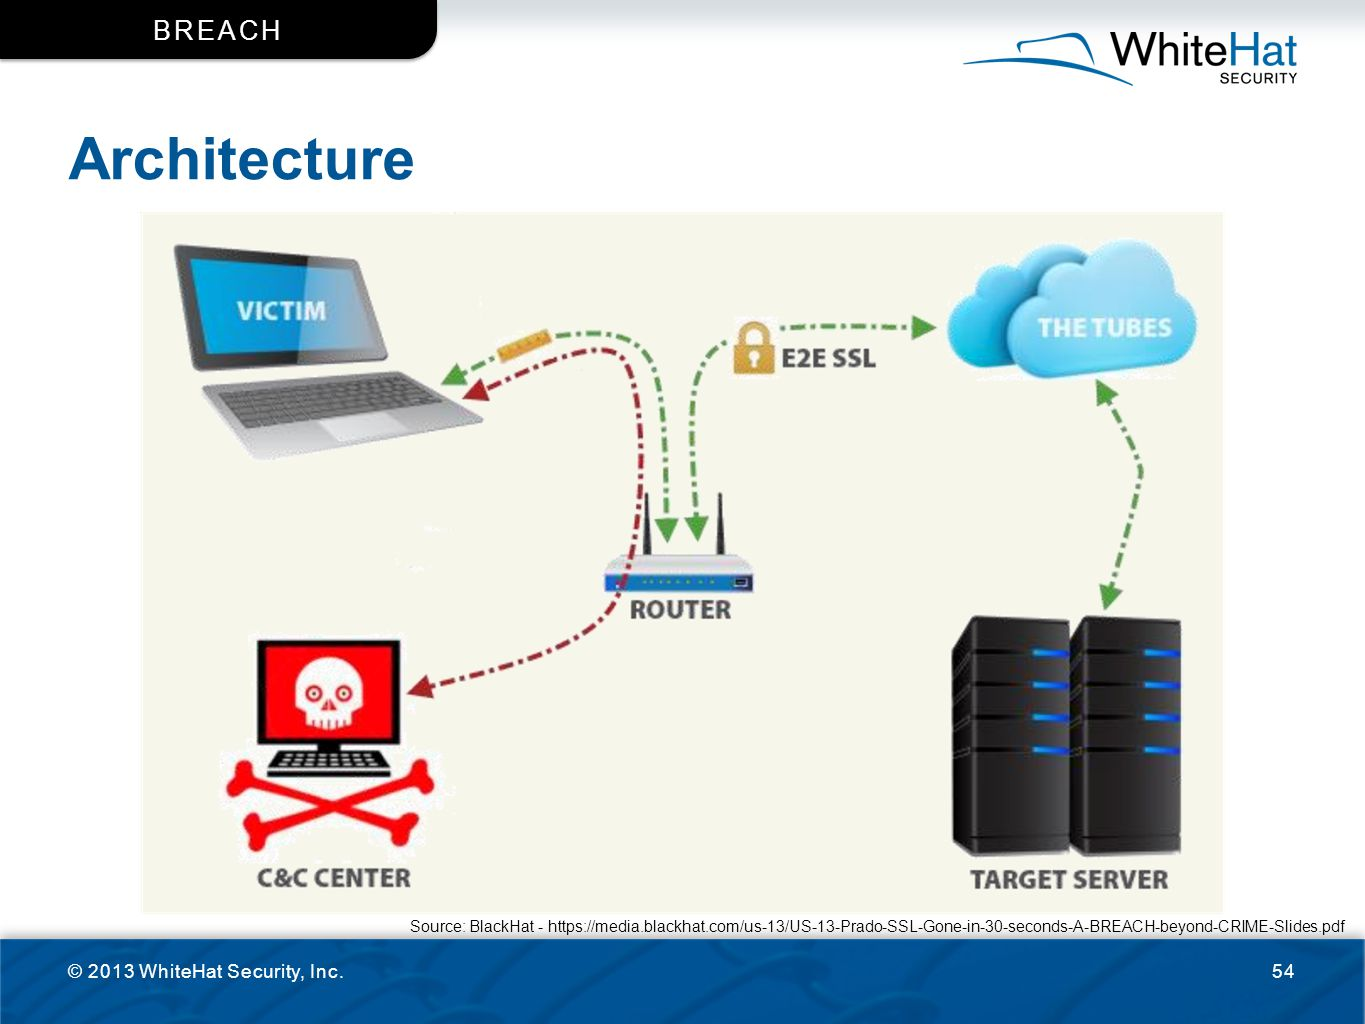 Architecture BReACH © 2013 WhiteHat Security, Inc.